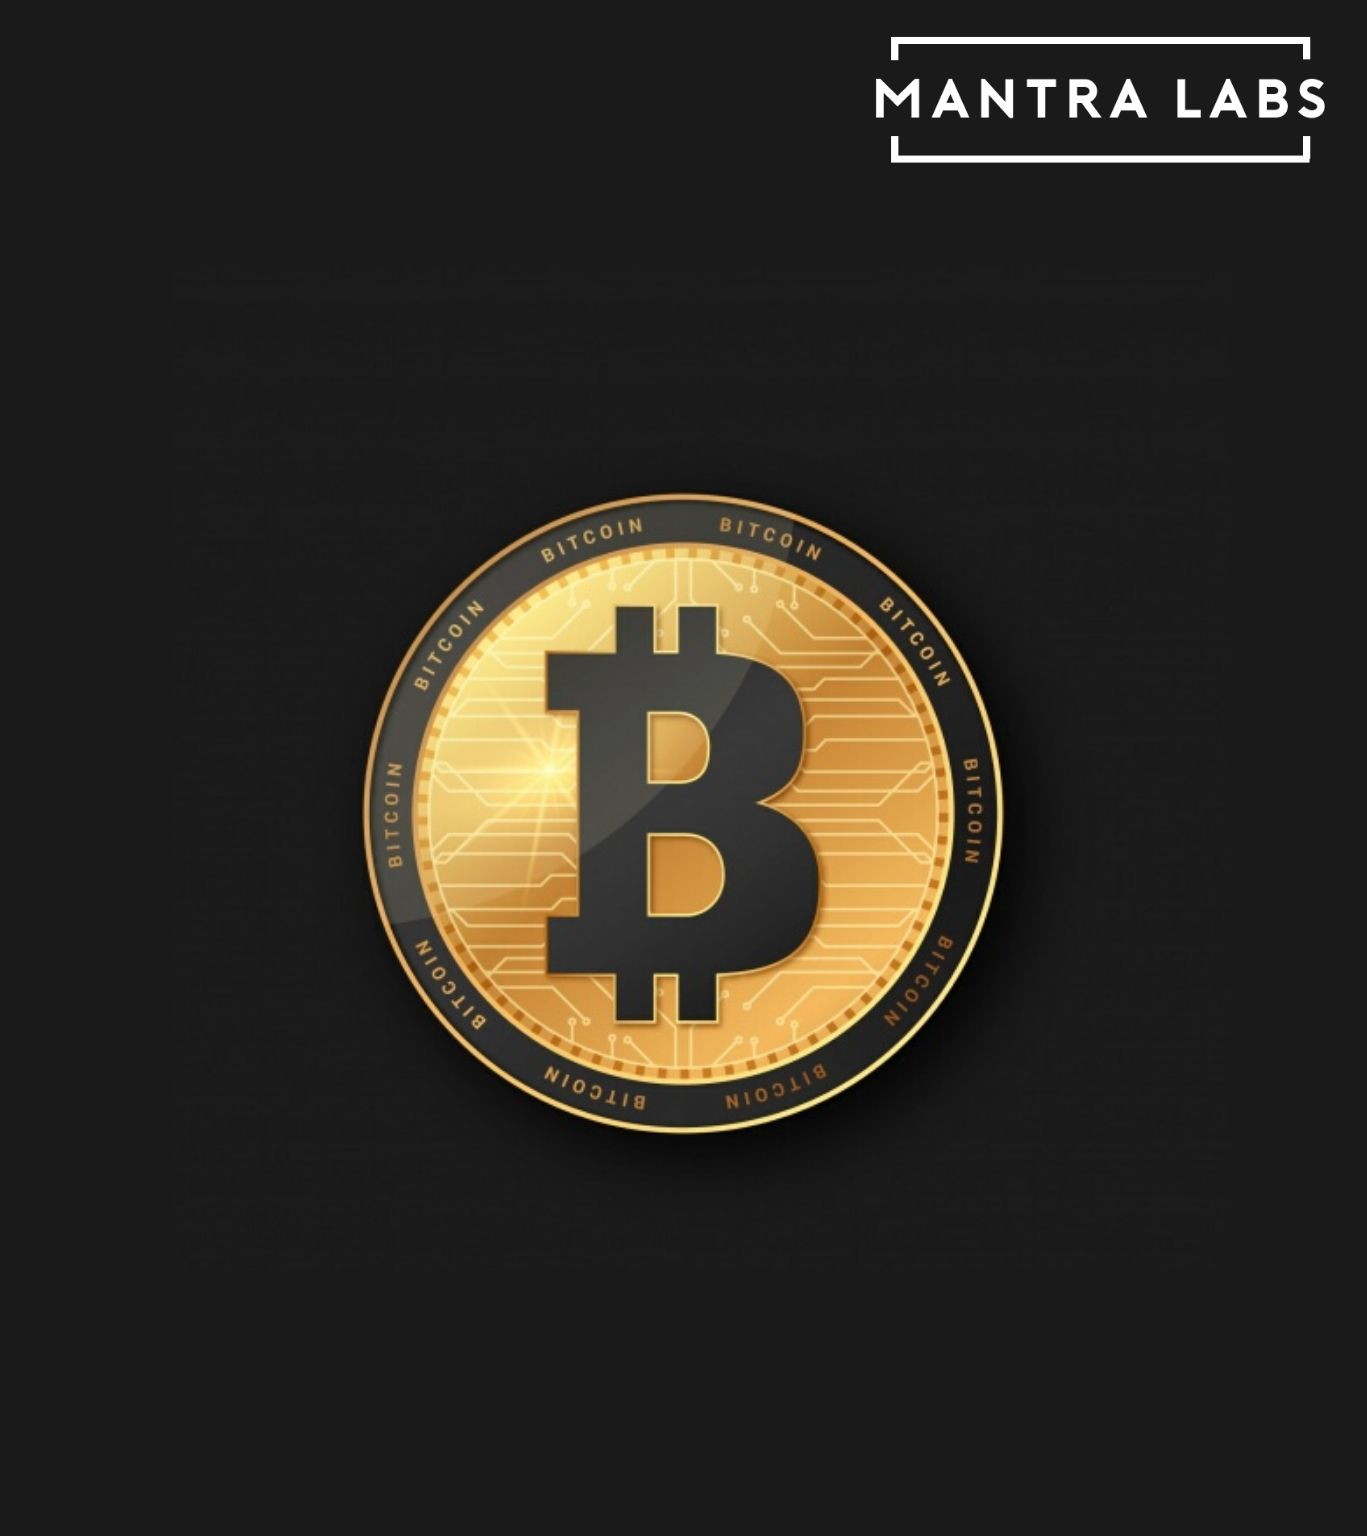 Dark side of the internet bitcoins definition hella bitcoins for free